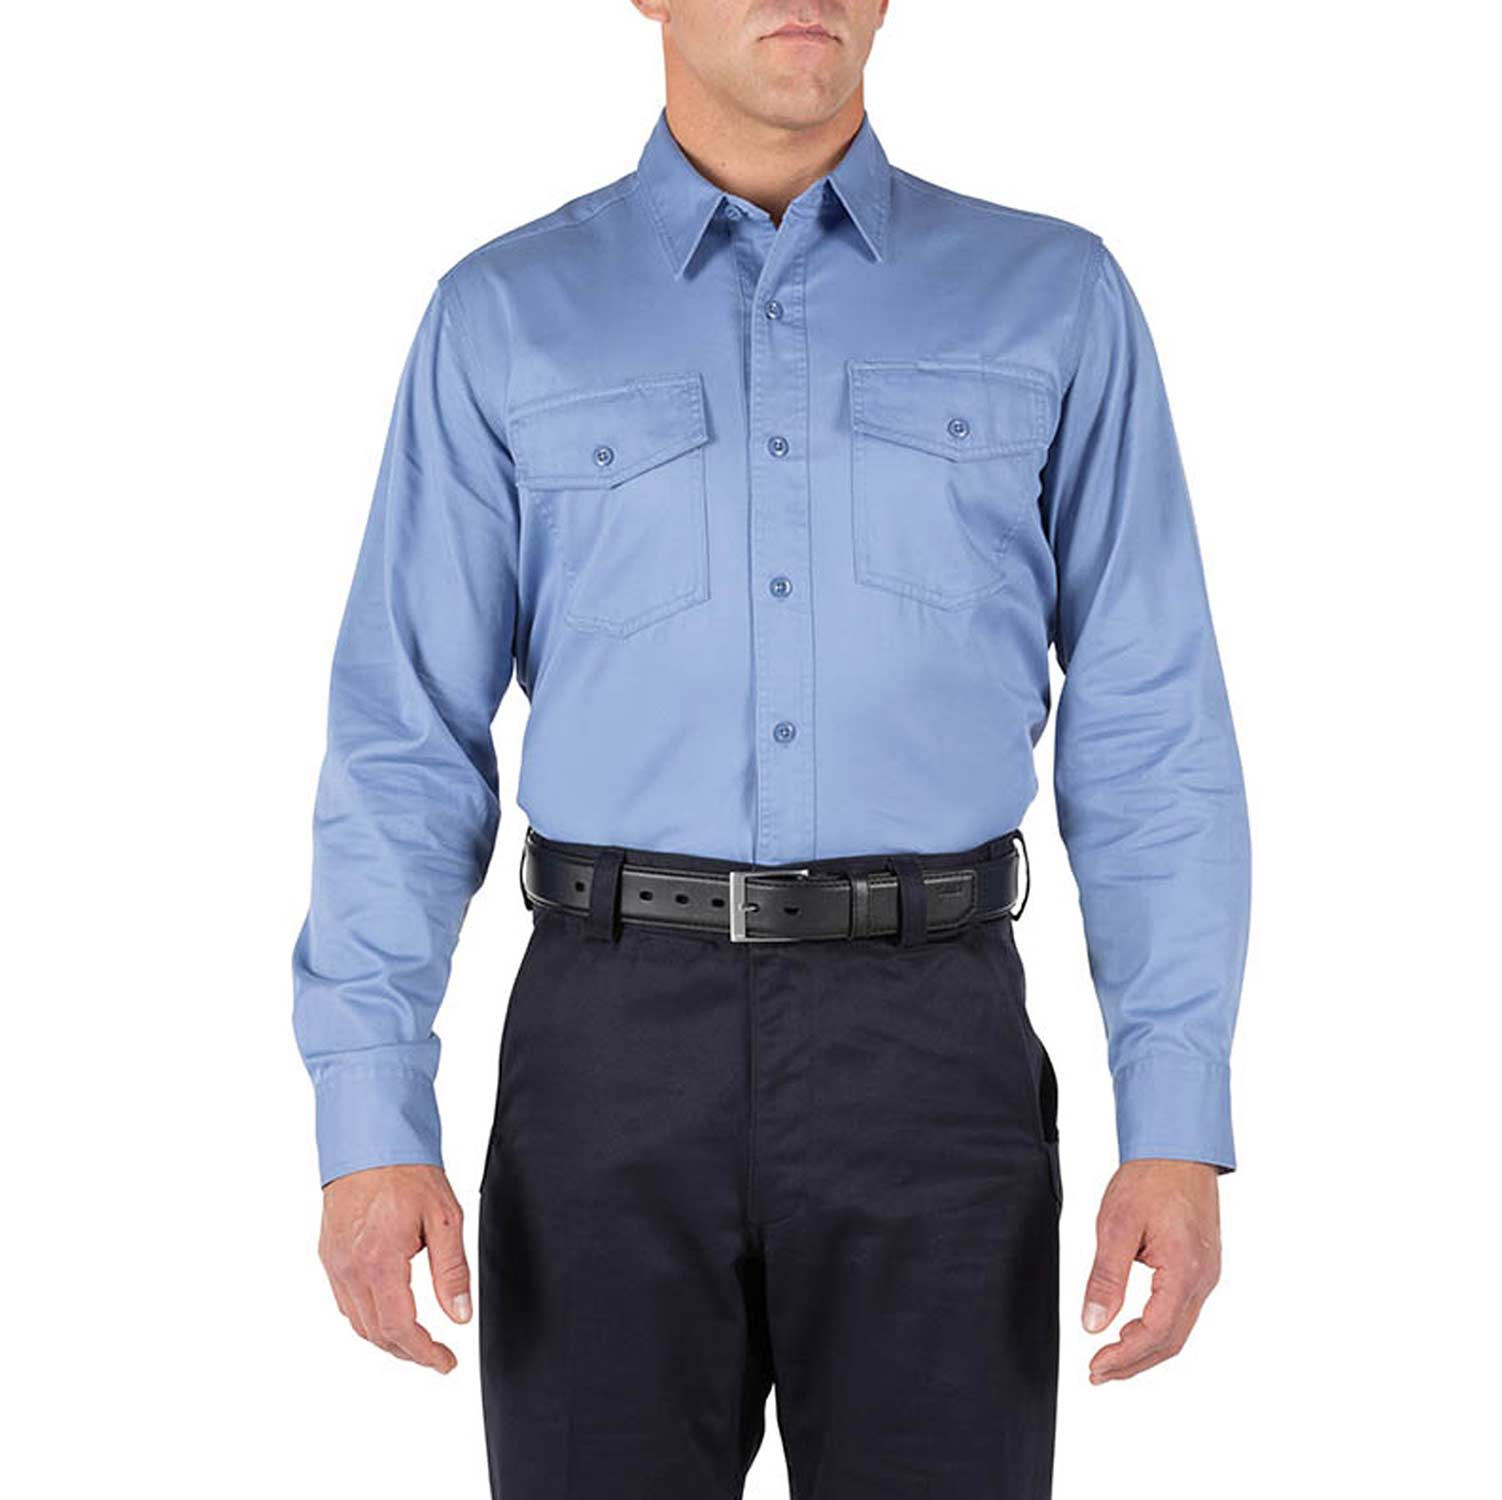 5.11 Tactical Long Sleeve Company Shirt